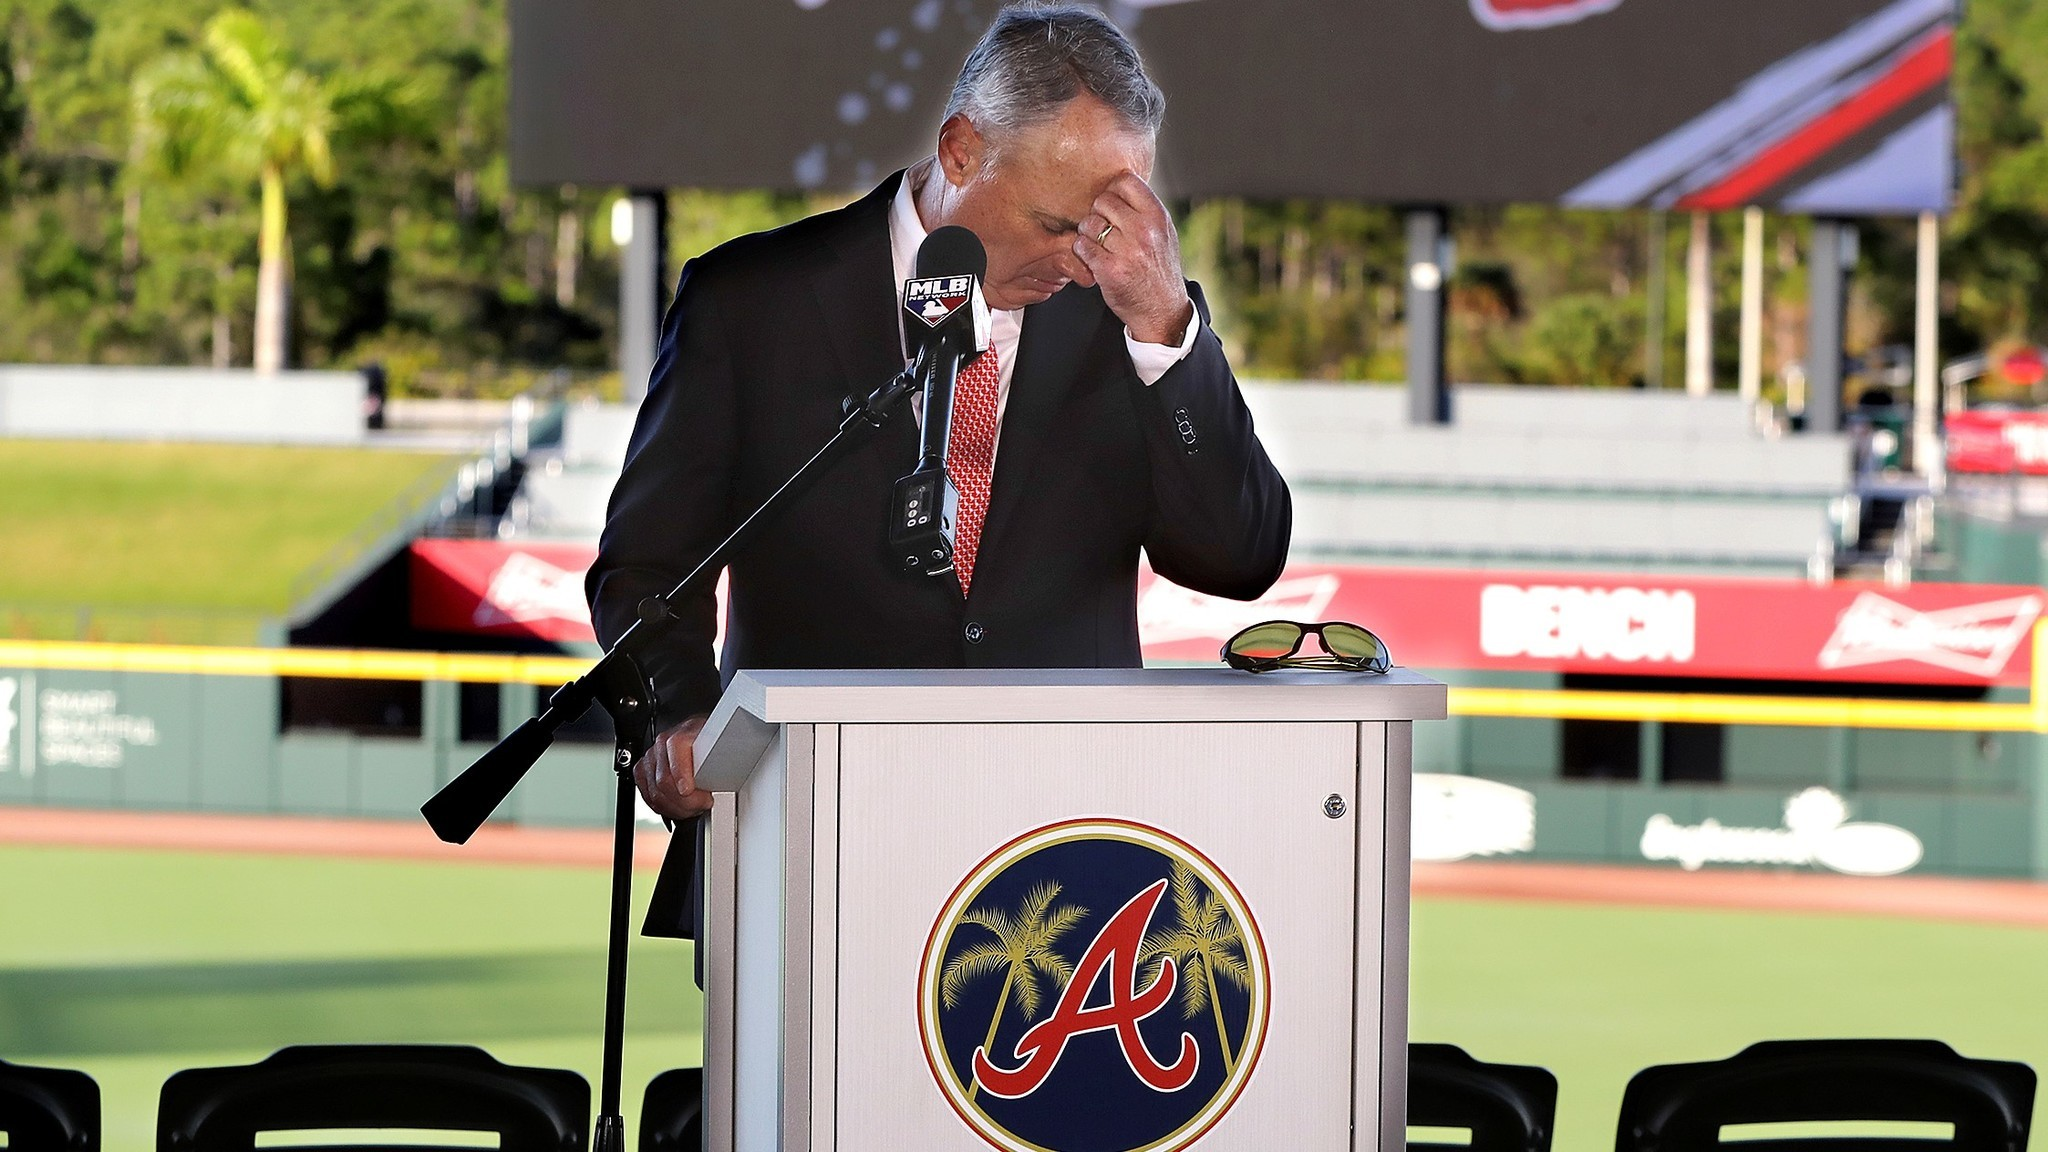 Rob Manfred says public shame is enough punishment for Astros players' cheating